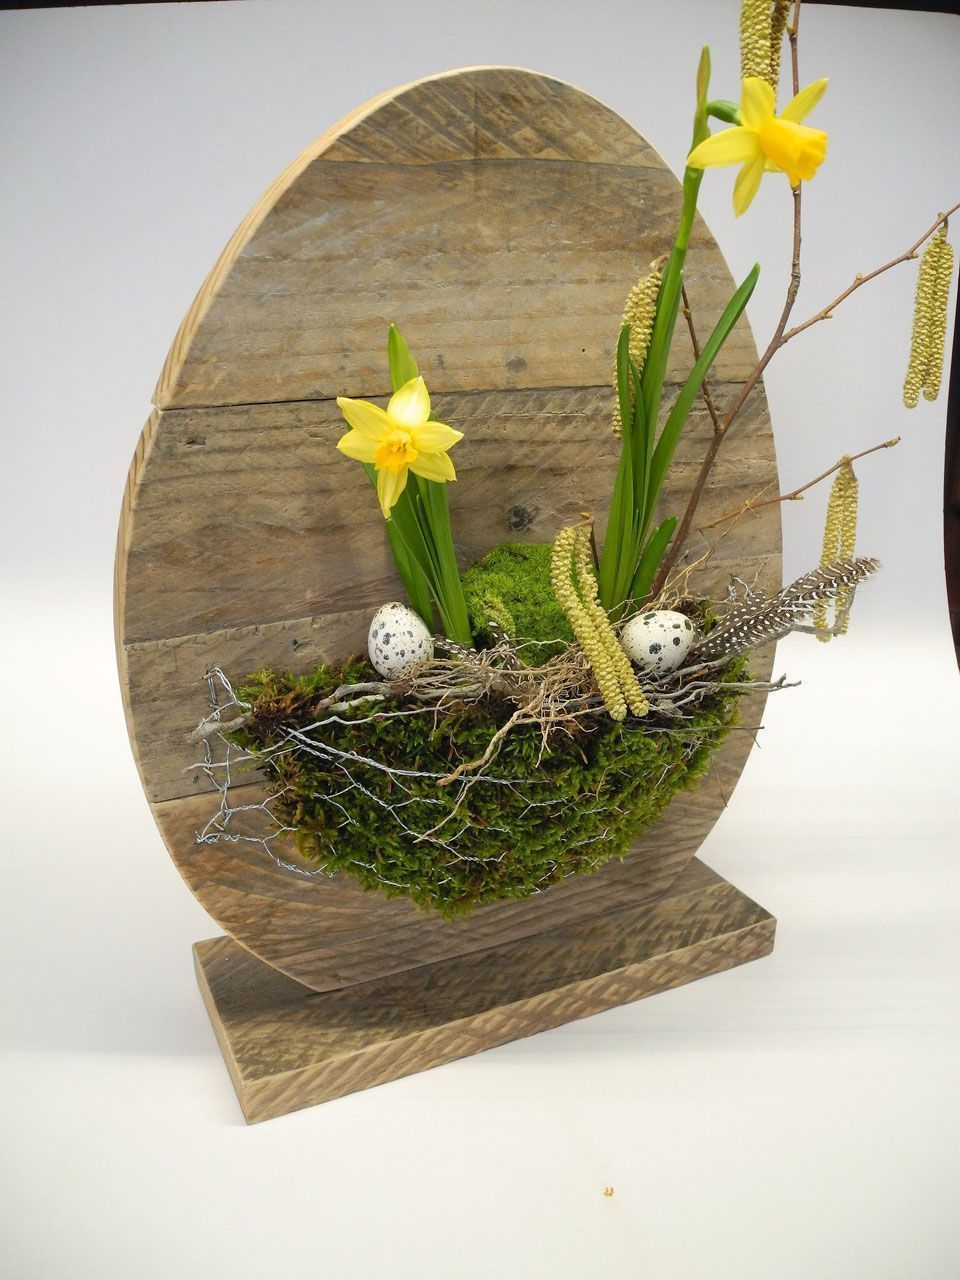 Easter decoration shop pallet furniture driftwood home accessories #wooden crafts flowers ...,  #accessories #crafts #Decoration #Driftwood #Easter #EventPlanningideas #flowers #Furniture #Home #Pallet #shop #Wooden